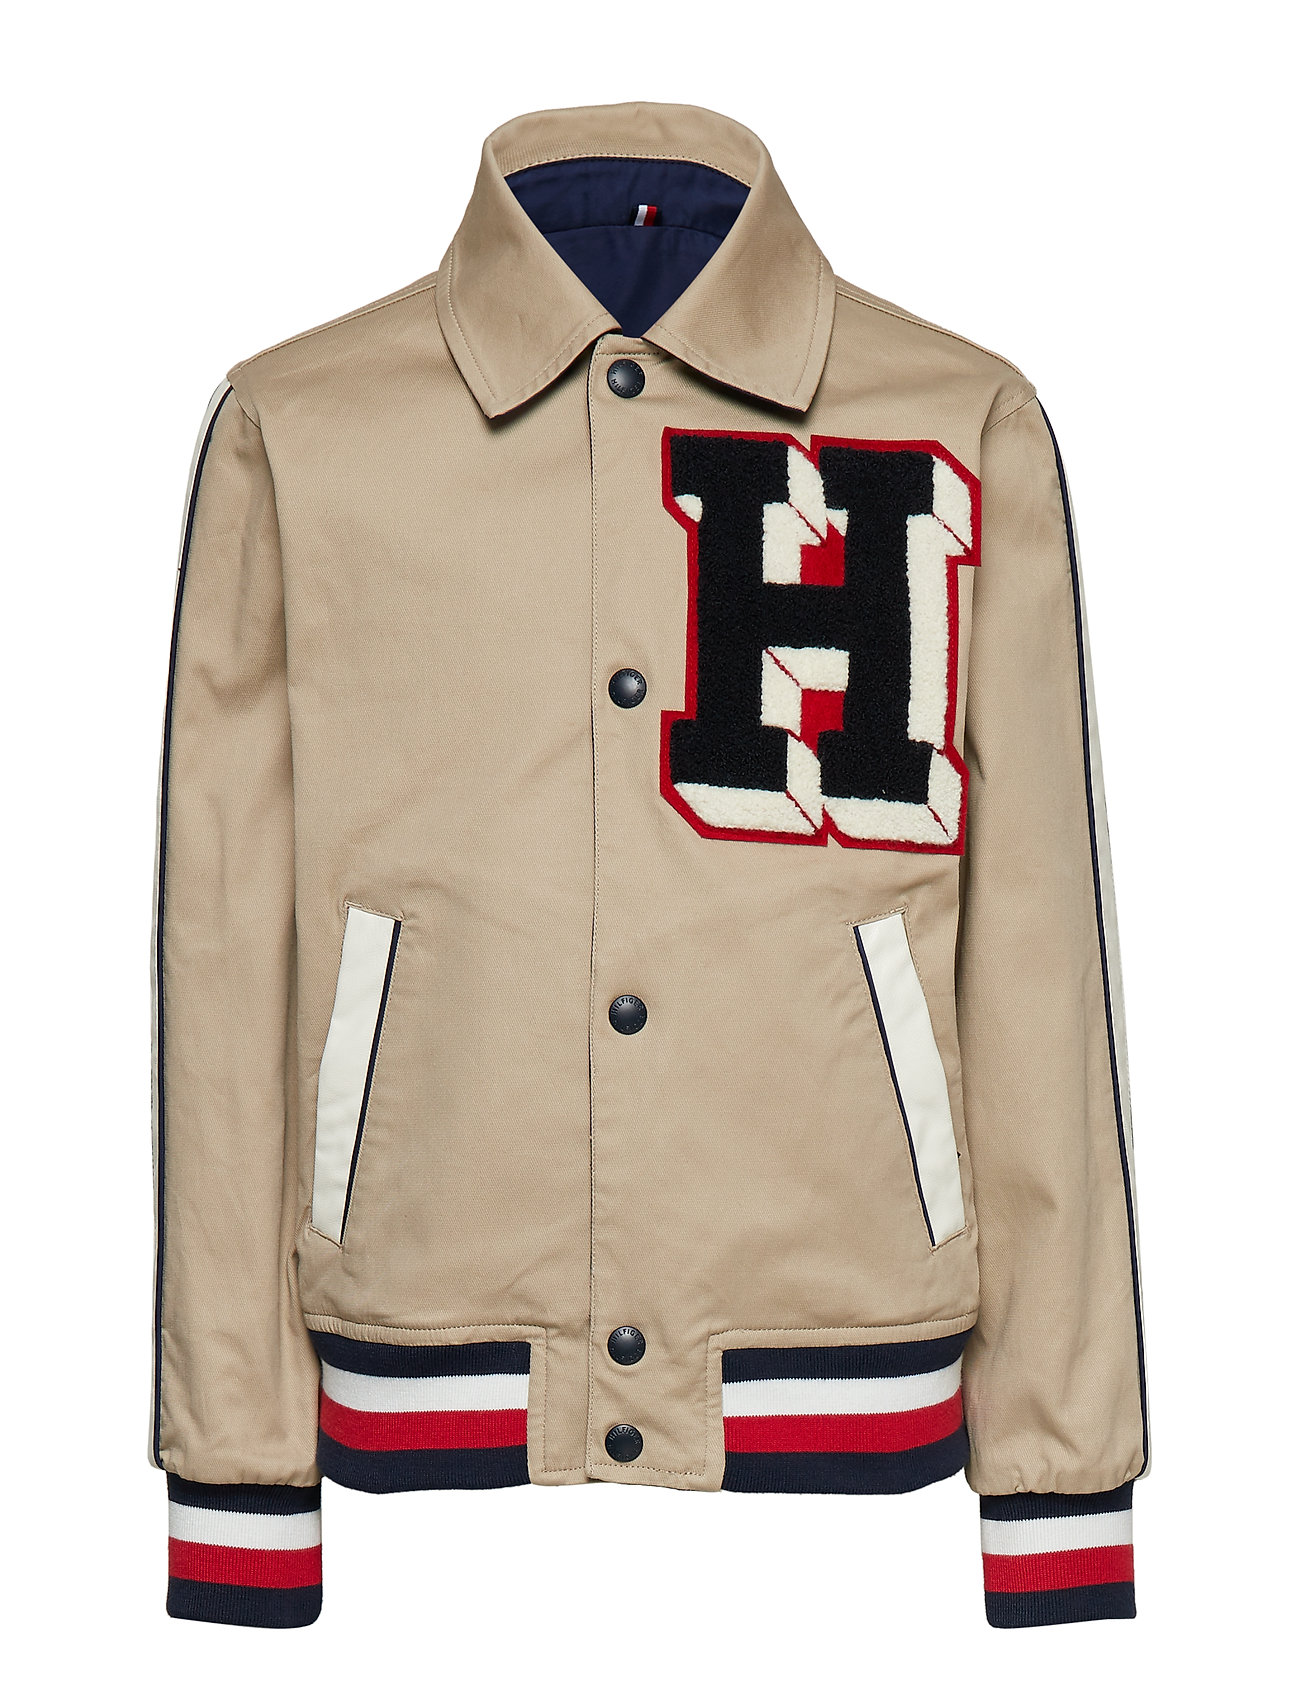 Tommy Hilfiger LETTERMAN REVERSIBLE JACKET - WHITE PEPPER